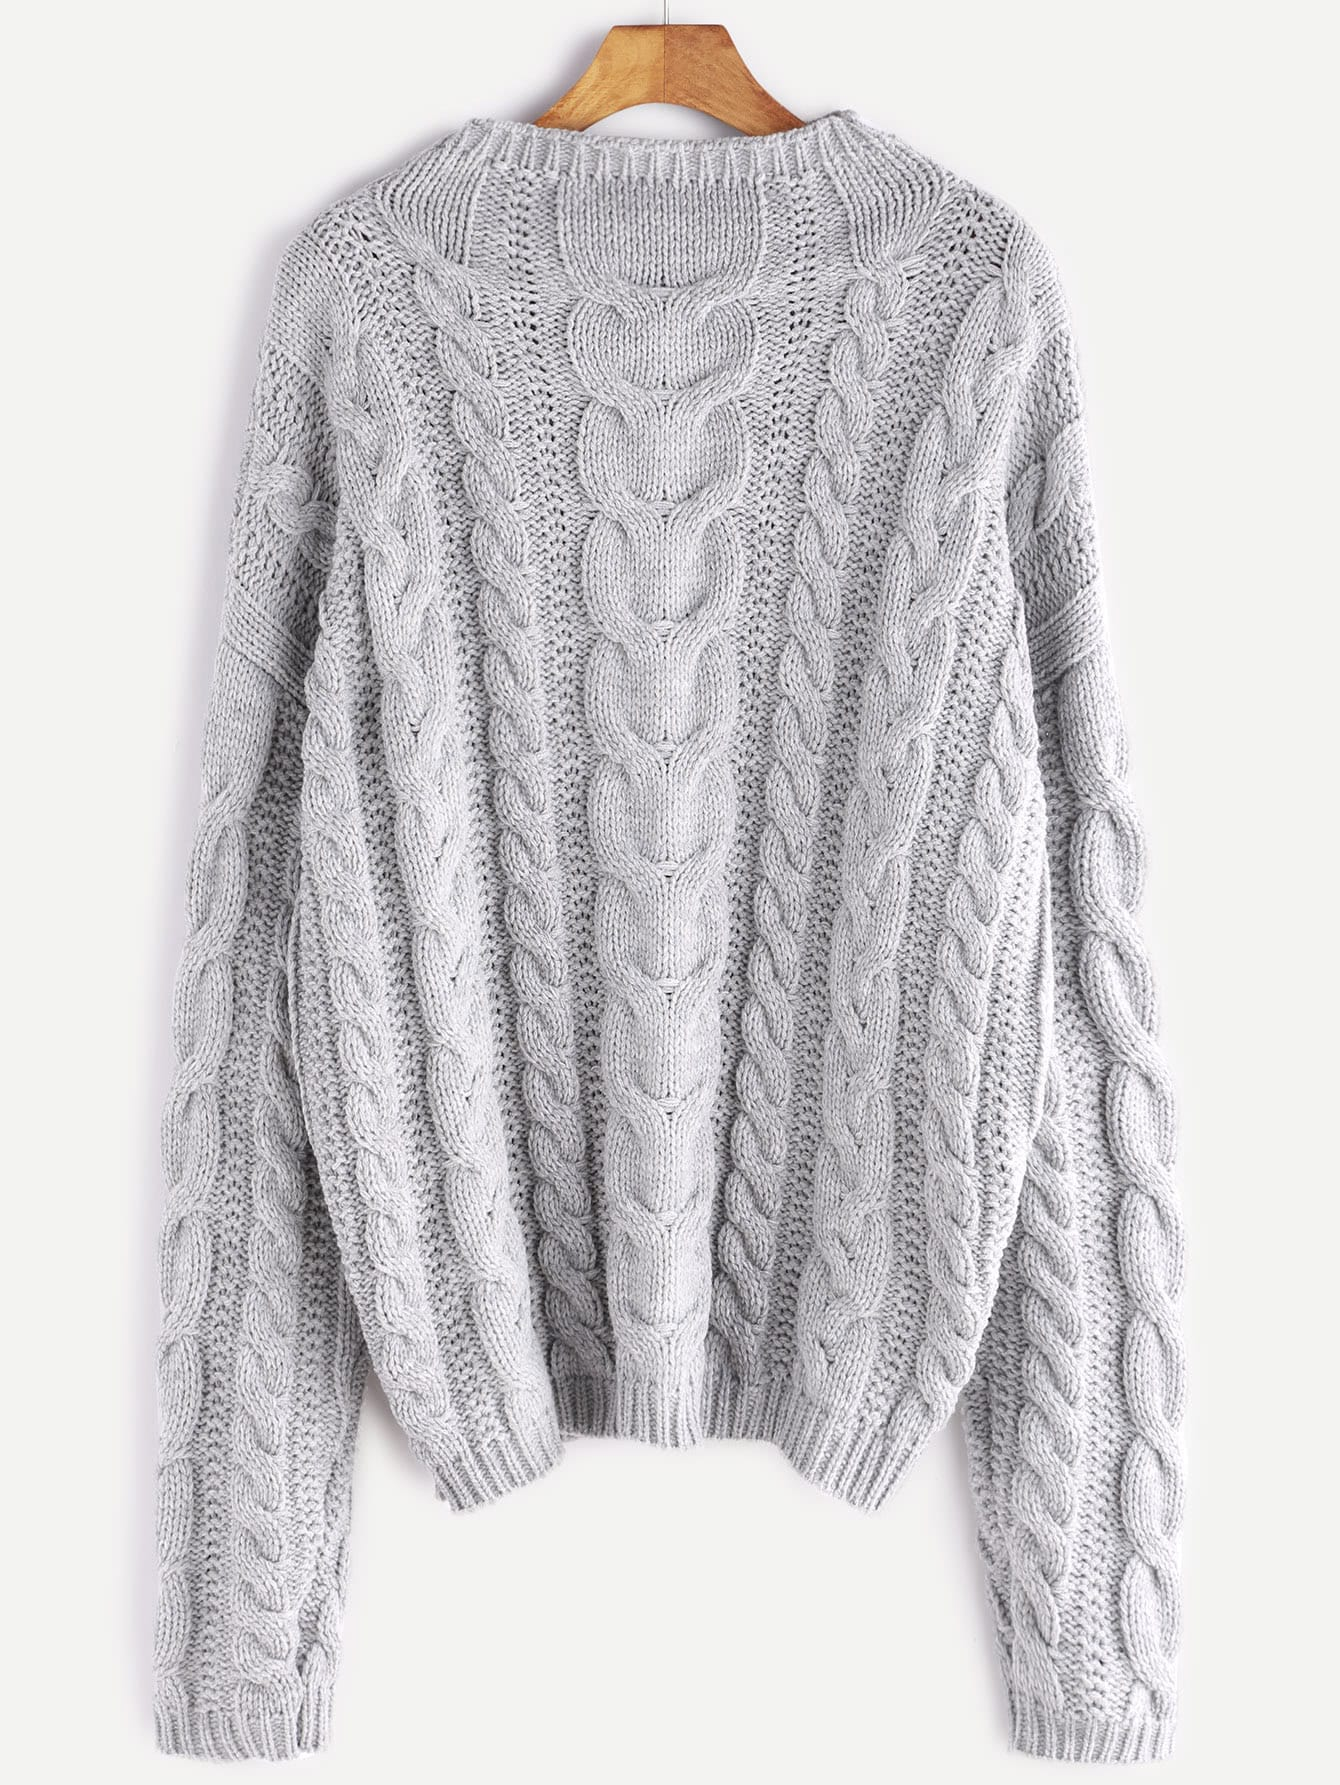 Grey Funnel Neck Cable Knit Chunky SweaterGrey Funnel Neck Cable Knit Chunky Sweater<br><br>color: Grey<br>size: one-size